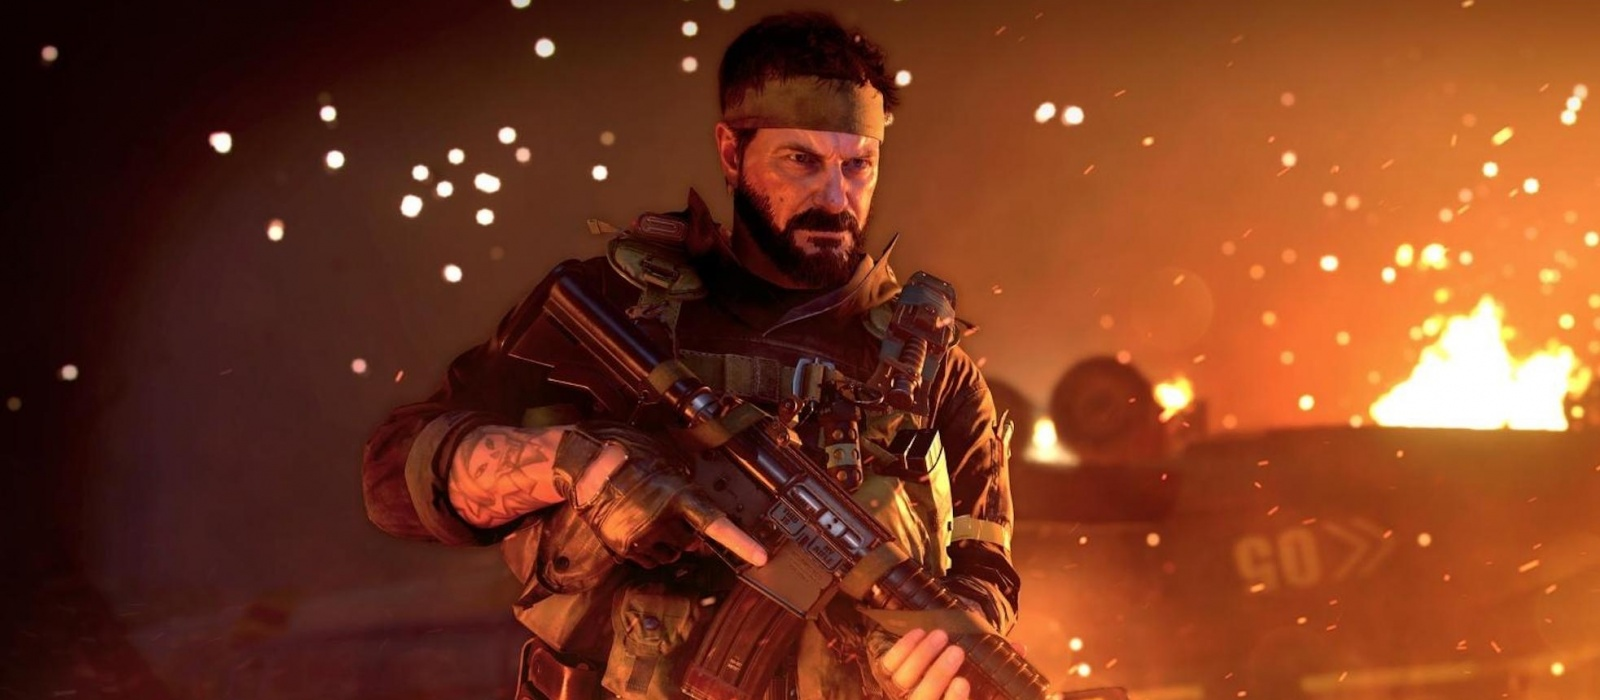 Call of Duty: Black Ops Cold War has got new system requirements.